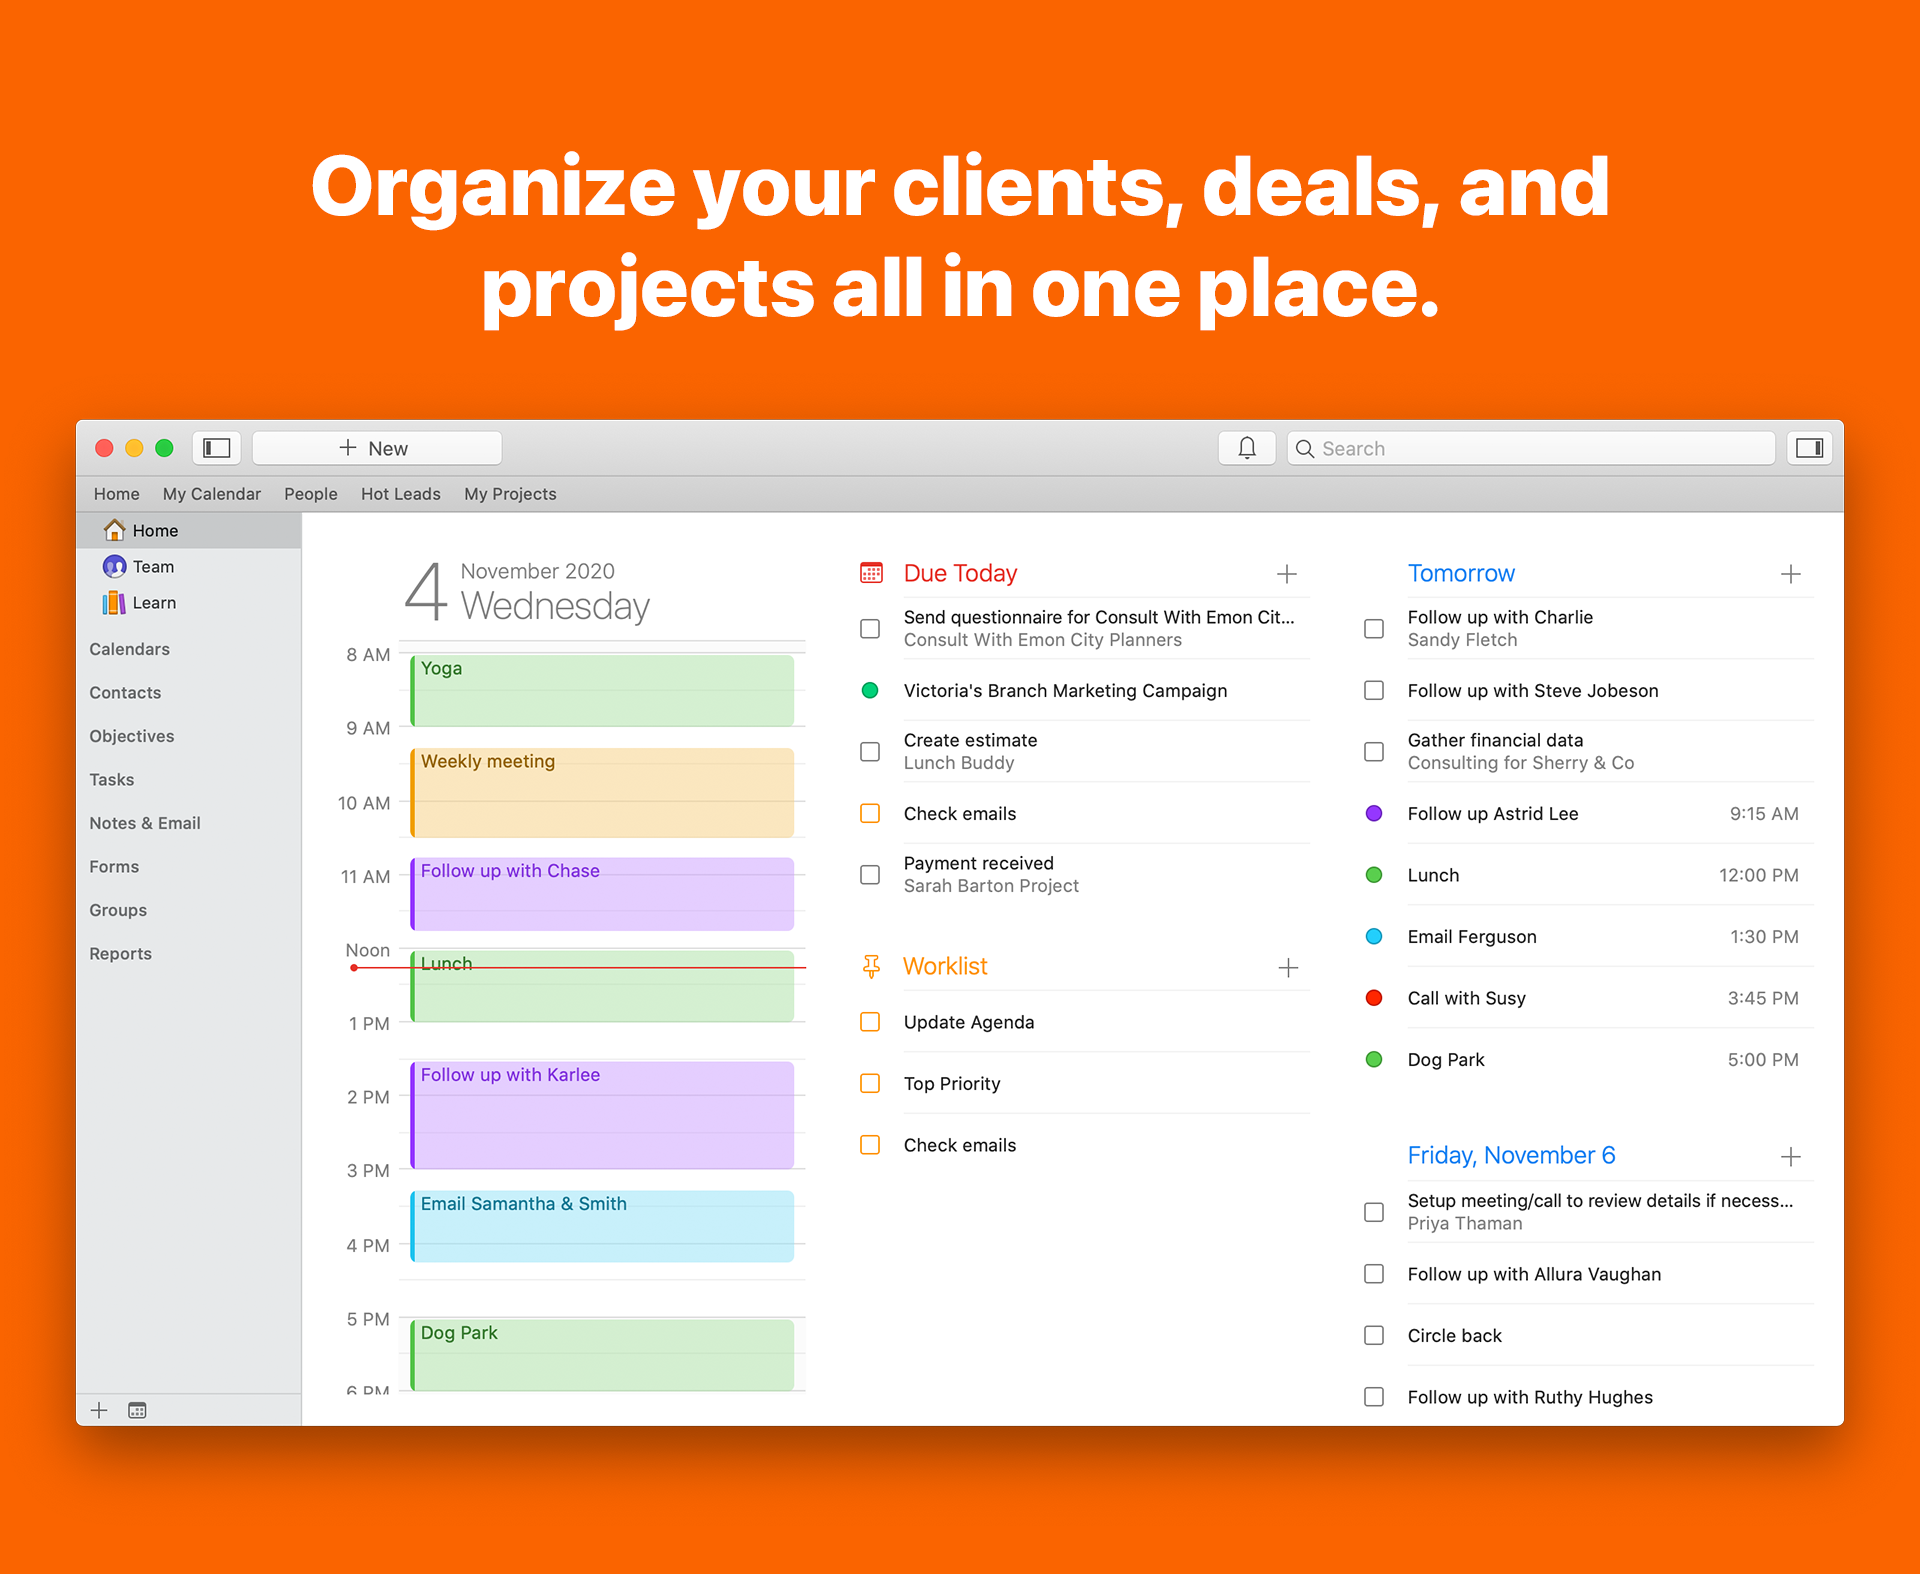 Organize your clients, deals, and projects all in one place.